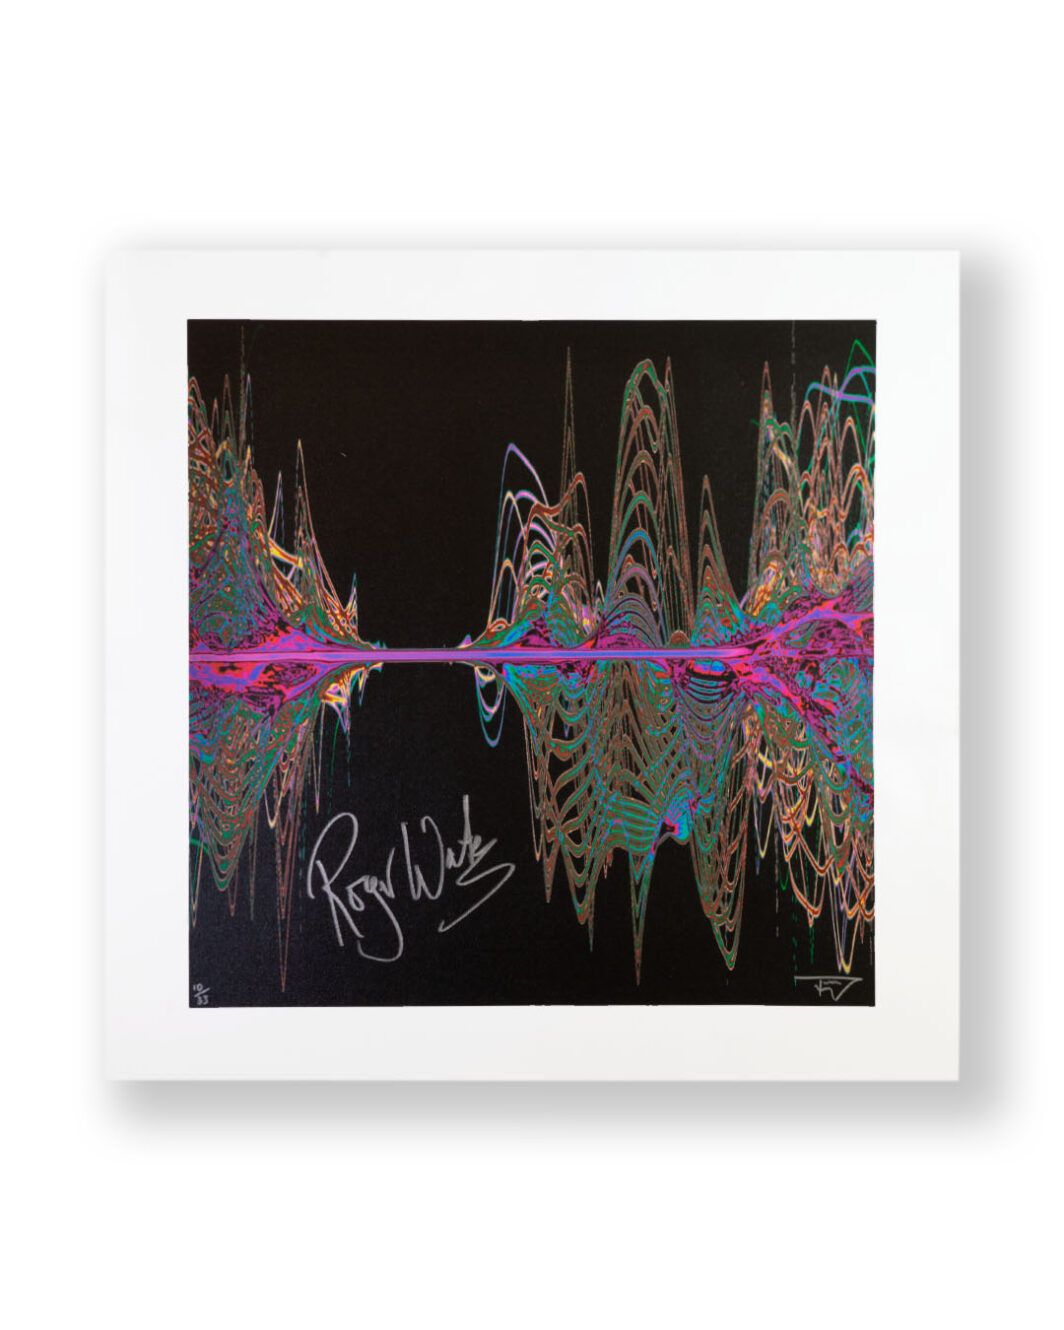 Pink floyd print signed by Roger Water